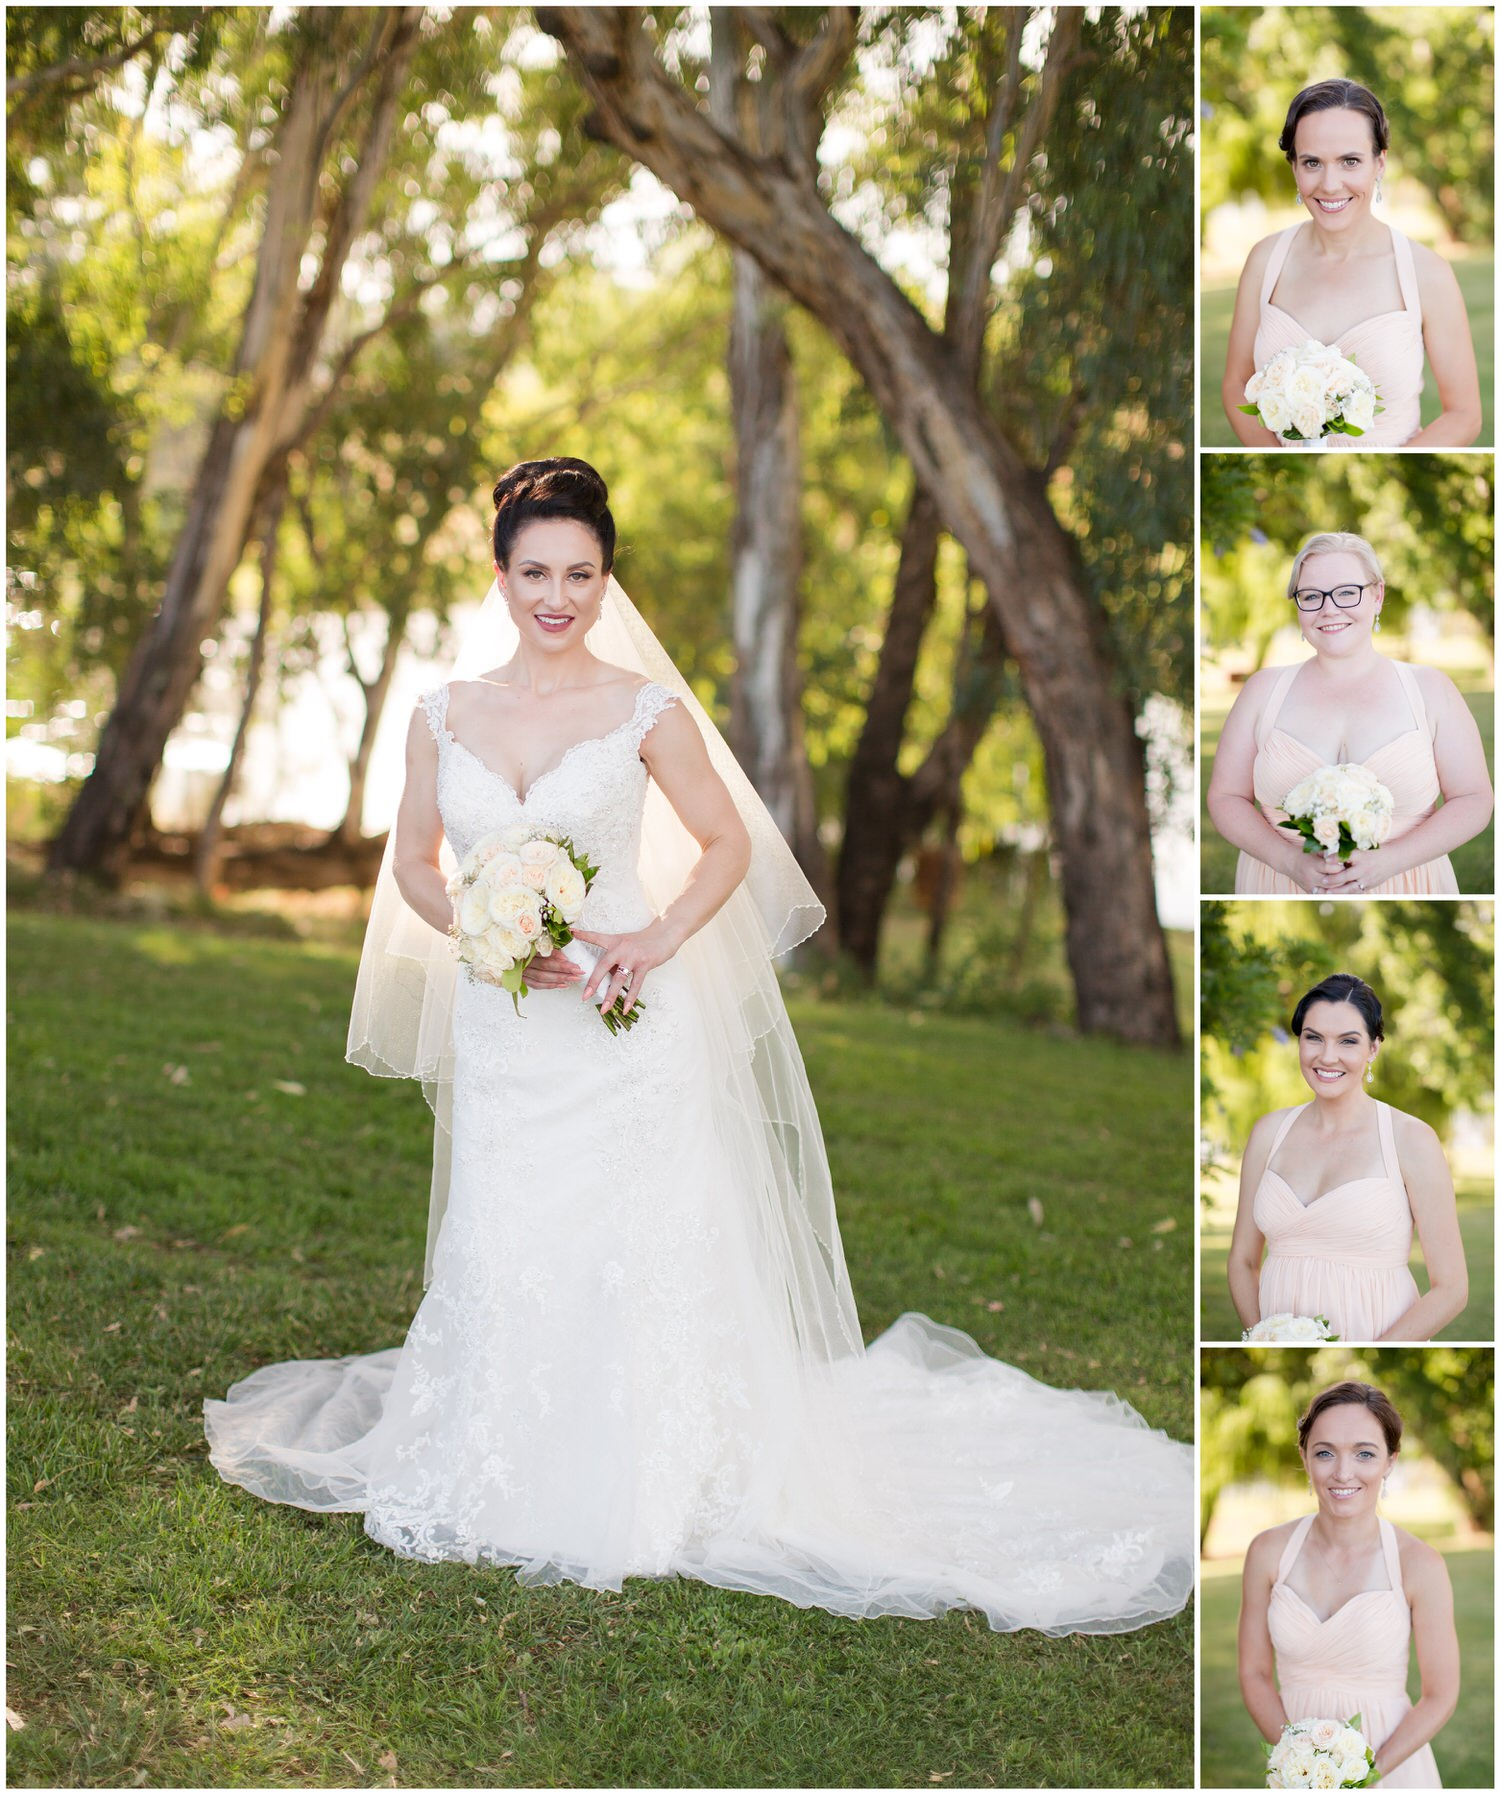 Dubbo Wedding Photography - Lazy River Estate Wedding 9